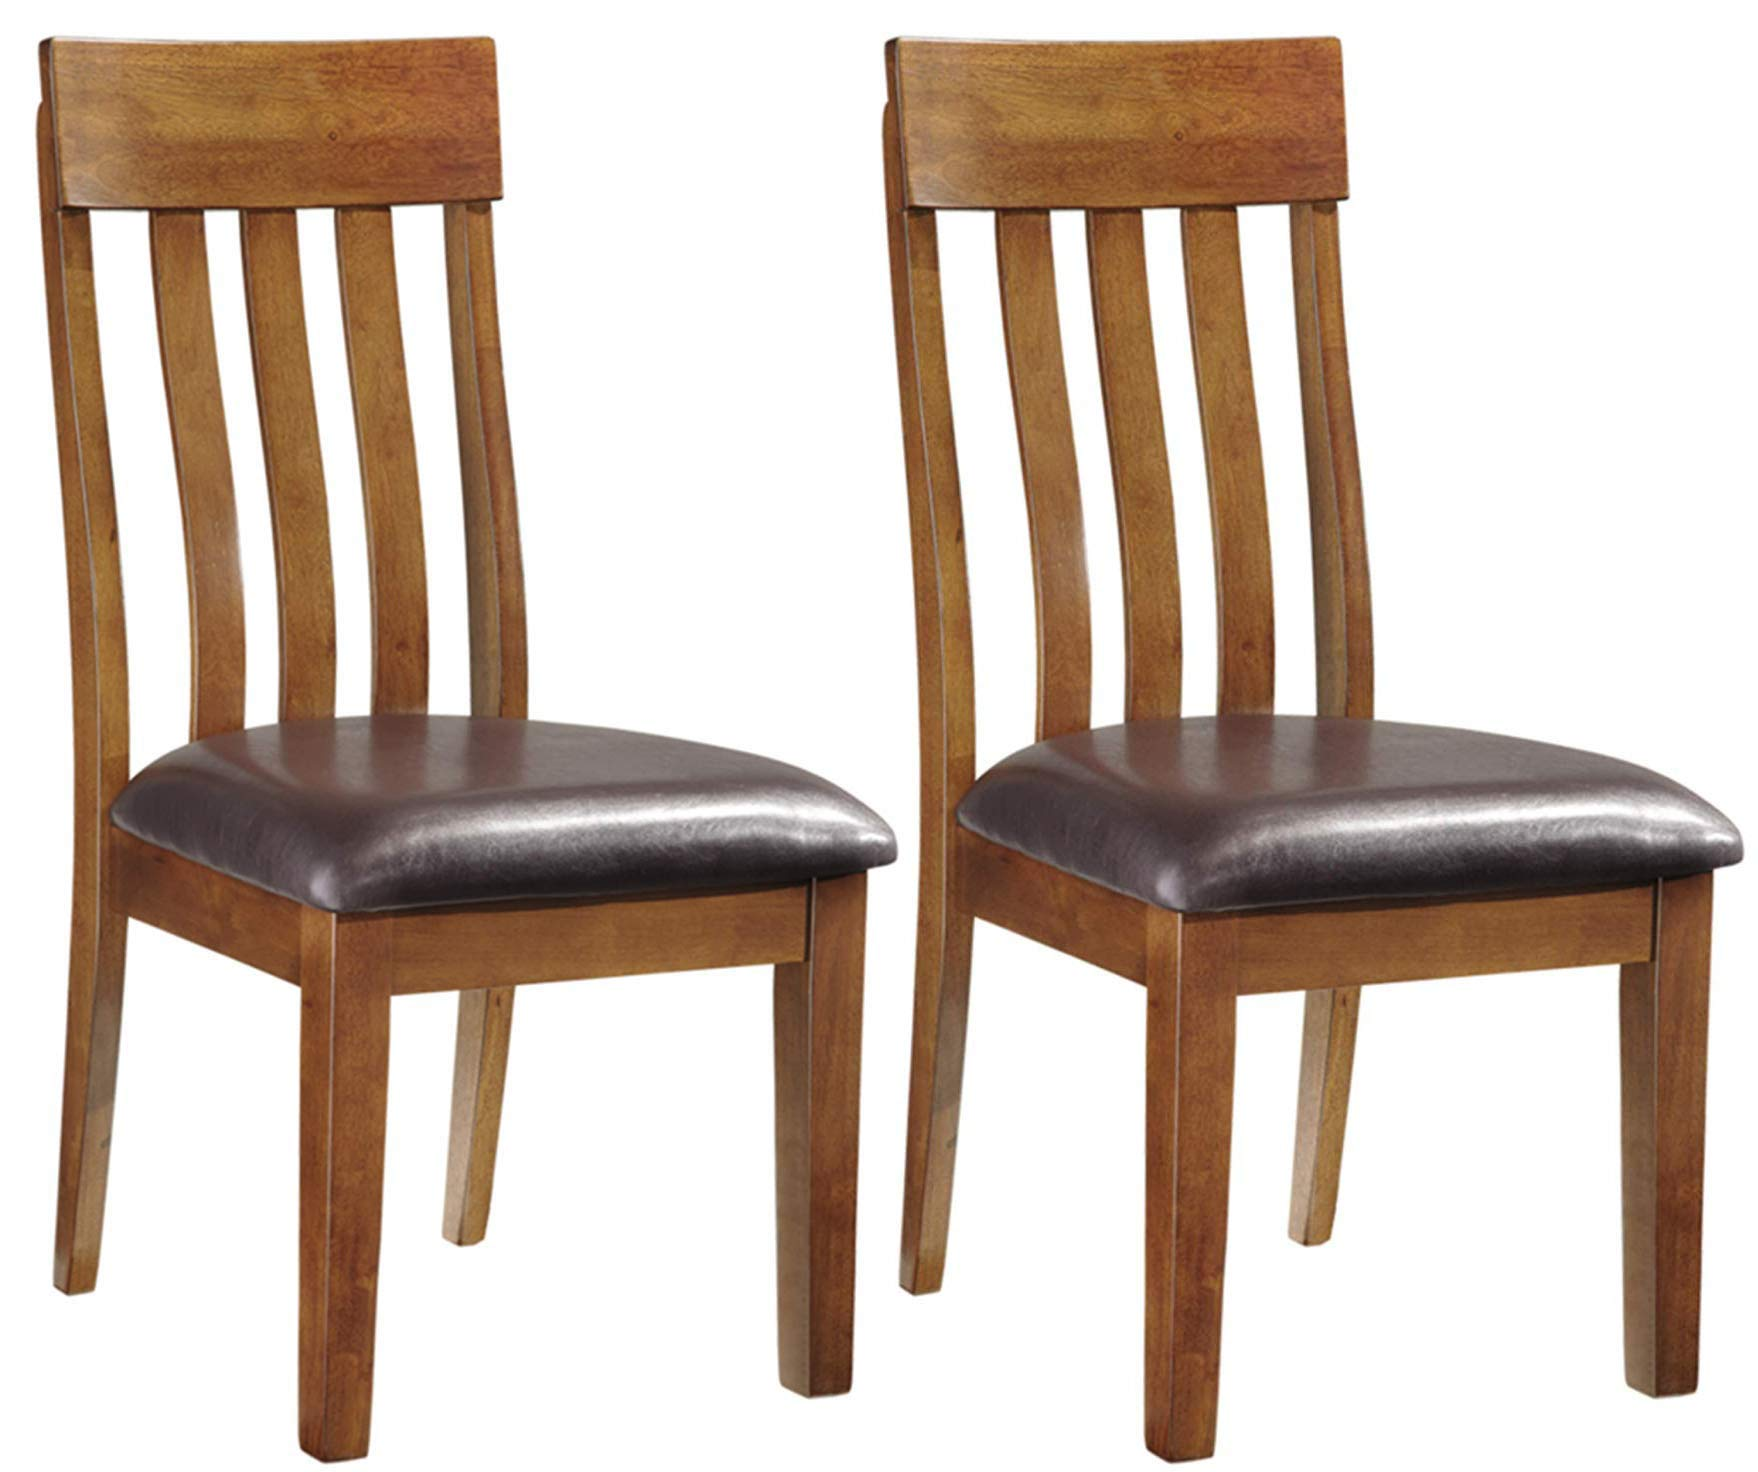 Ashley Furniture Signature Design - Ralene Upholstered Dining Side Chair - Rake Back Style - Set of 2 - Medium Brown by Signature Design by Ashley